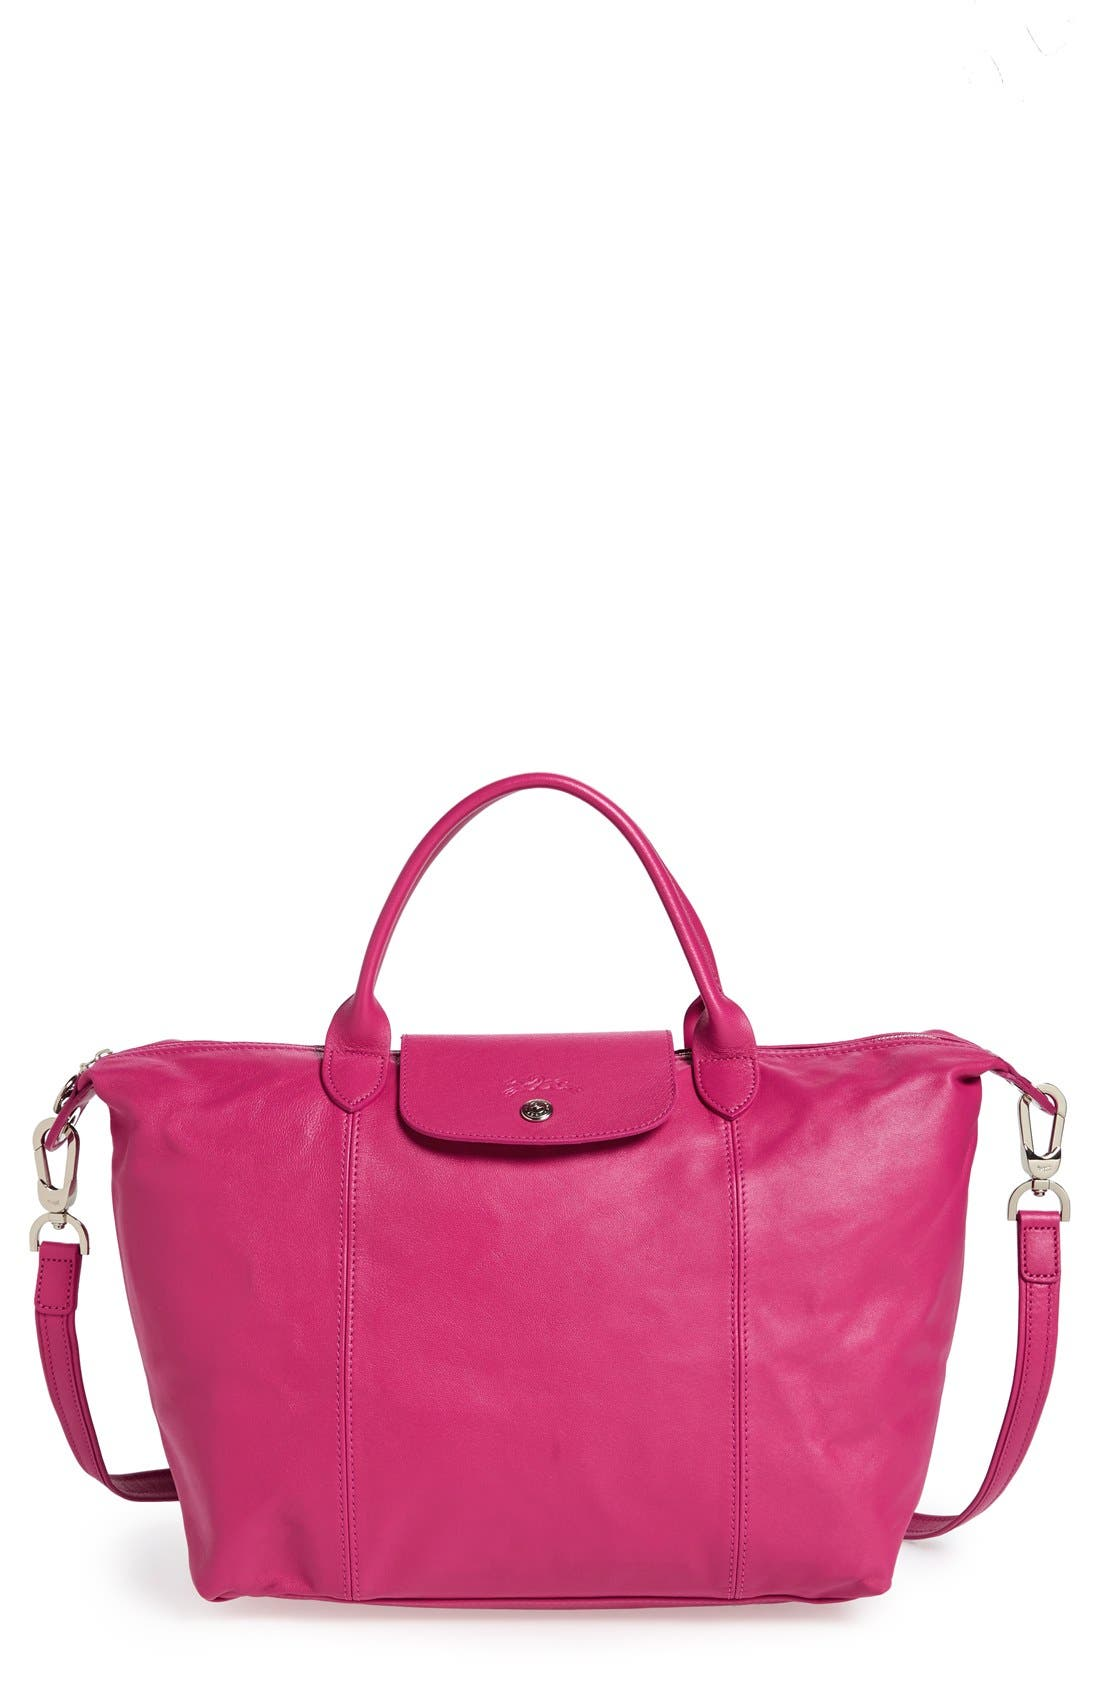 Main Image - Longchamp 'Le Pliage Cuir' Leather Handbag